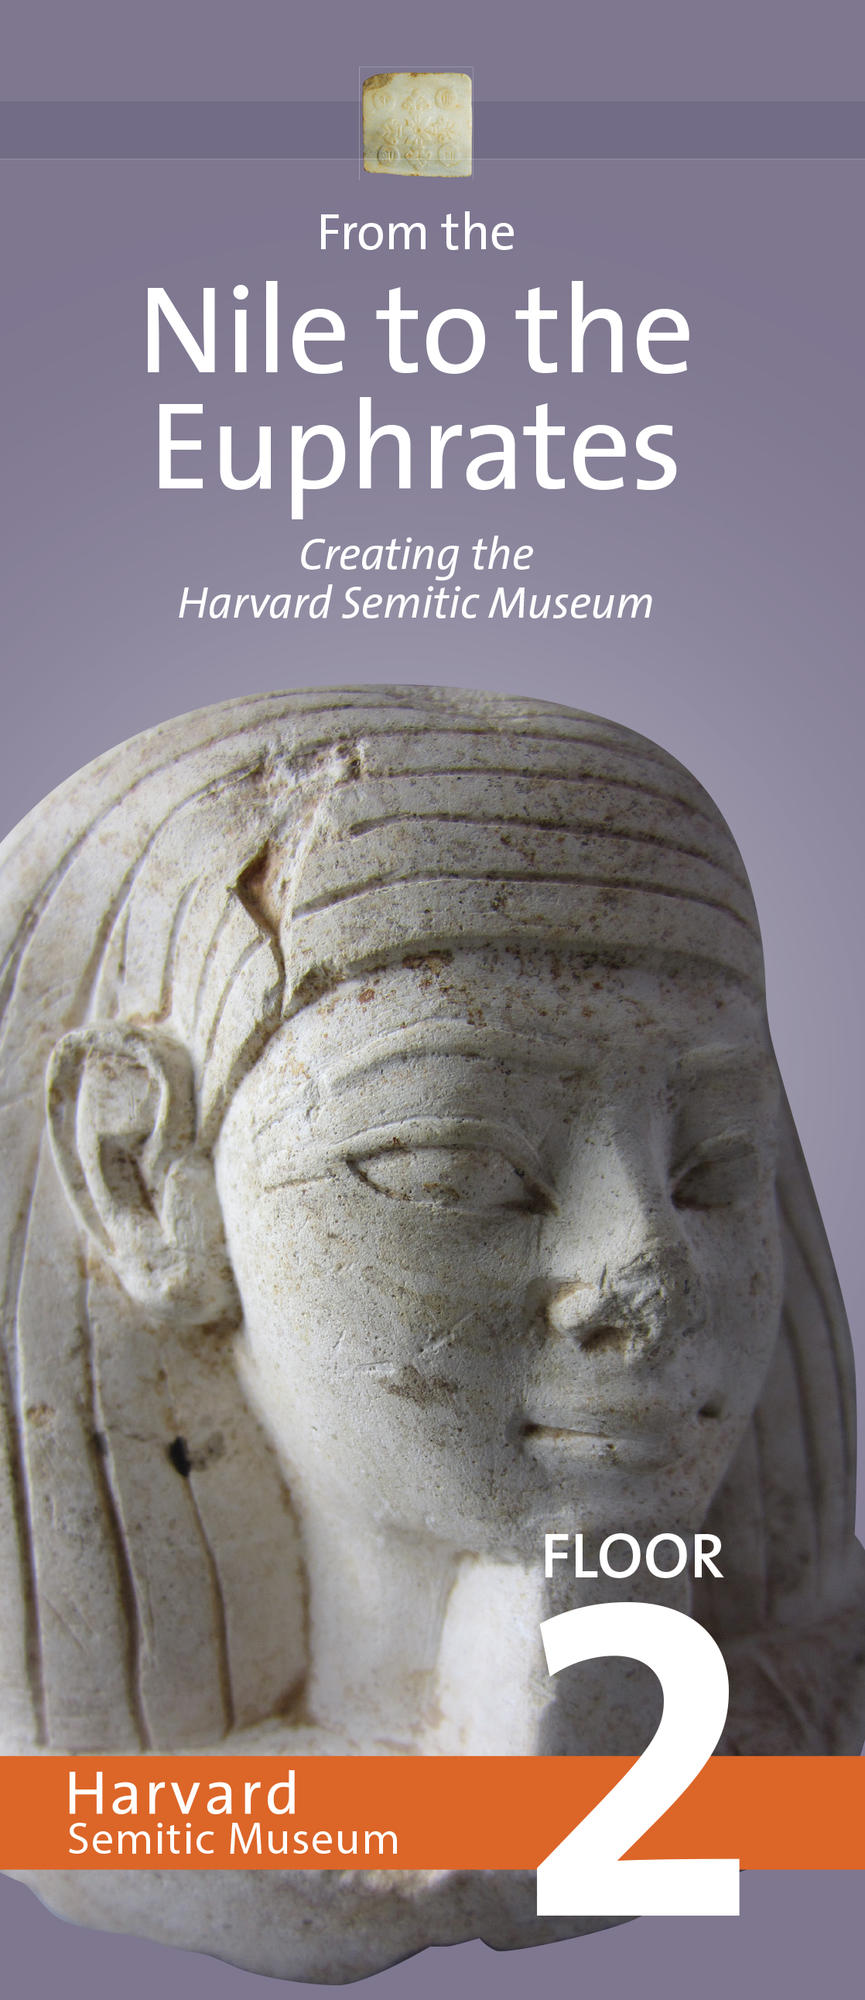 Image of bust from exhibit with words From the Nile to the Euphrates: Creating the Harvard Semitic Museum, Floor 2.